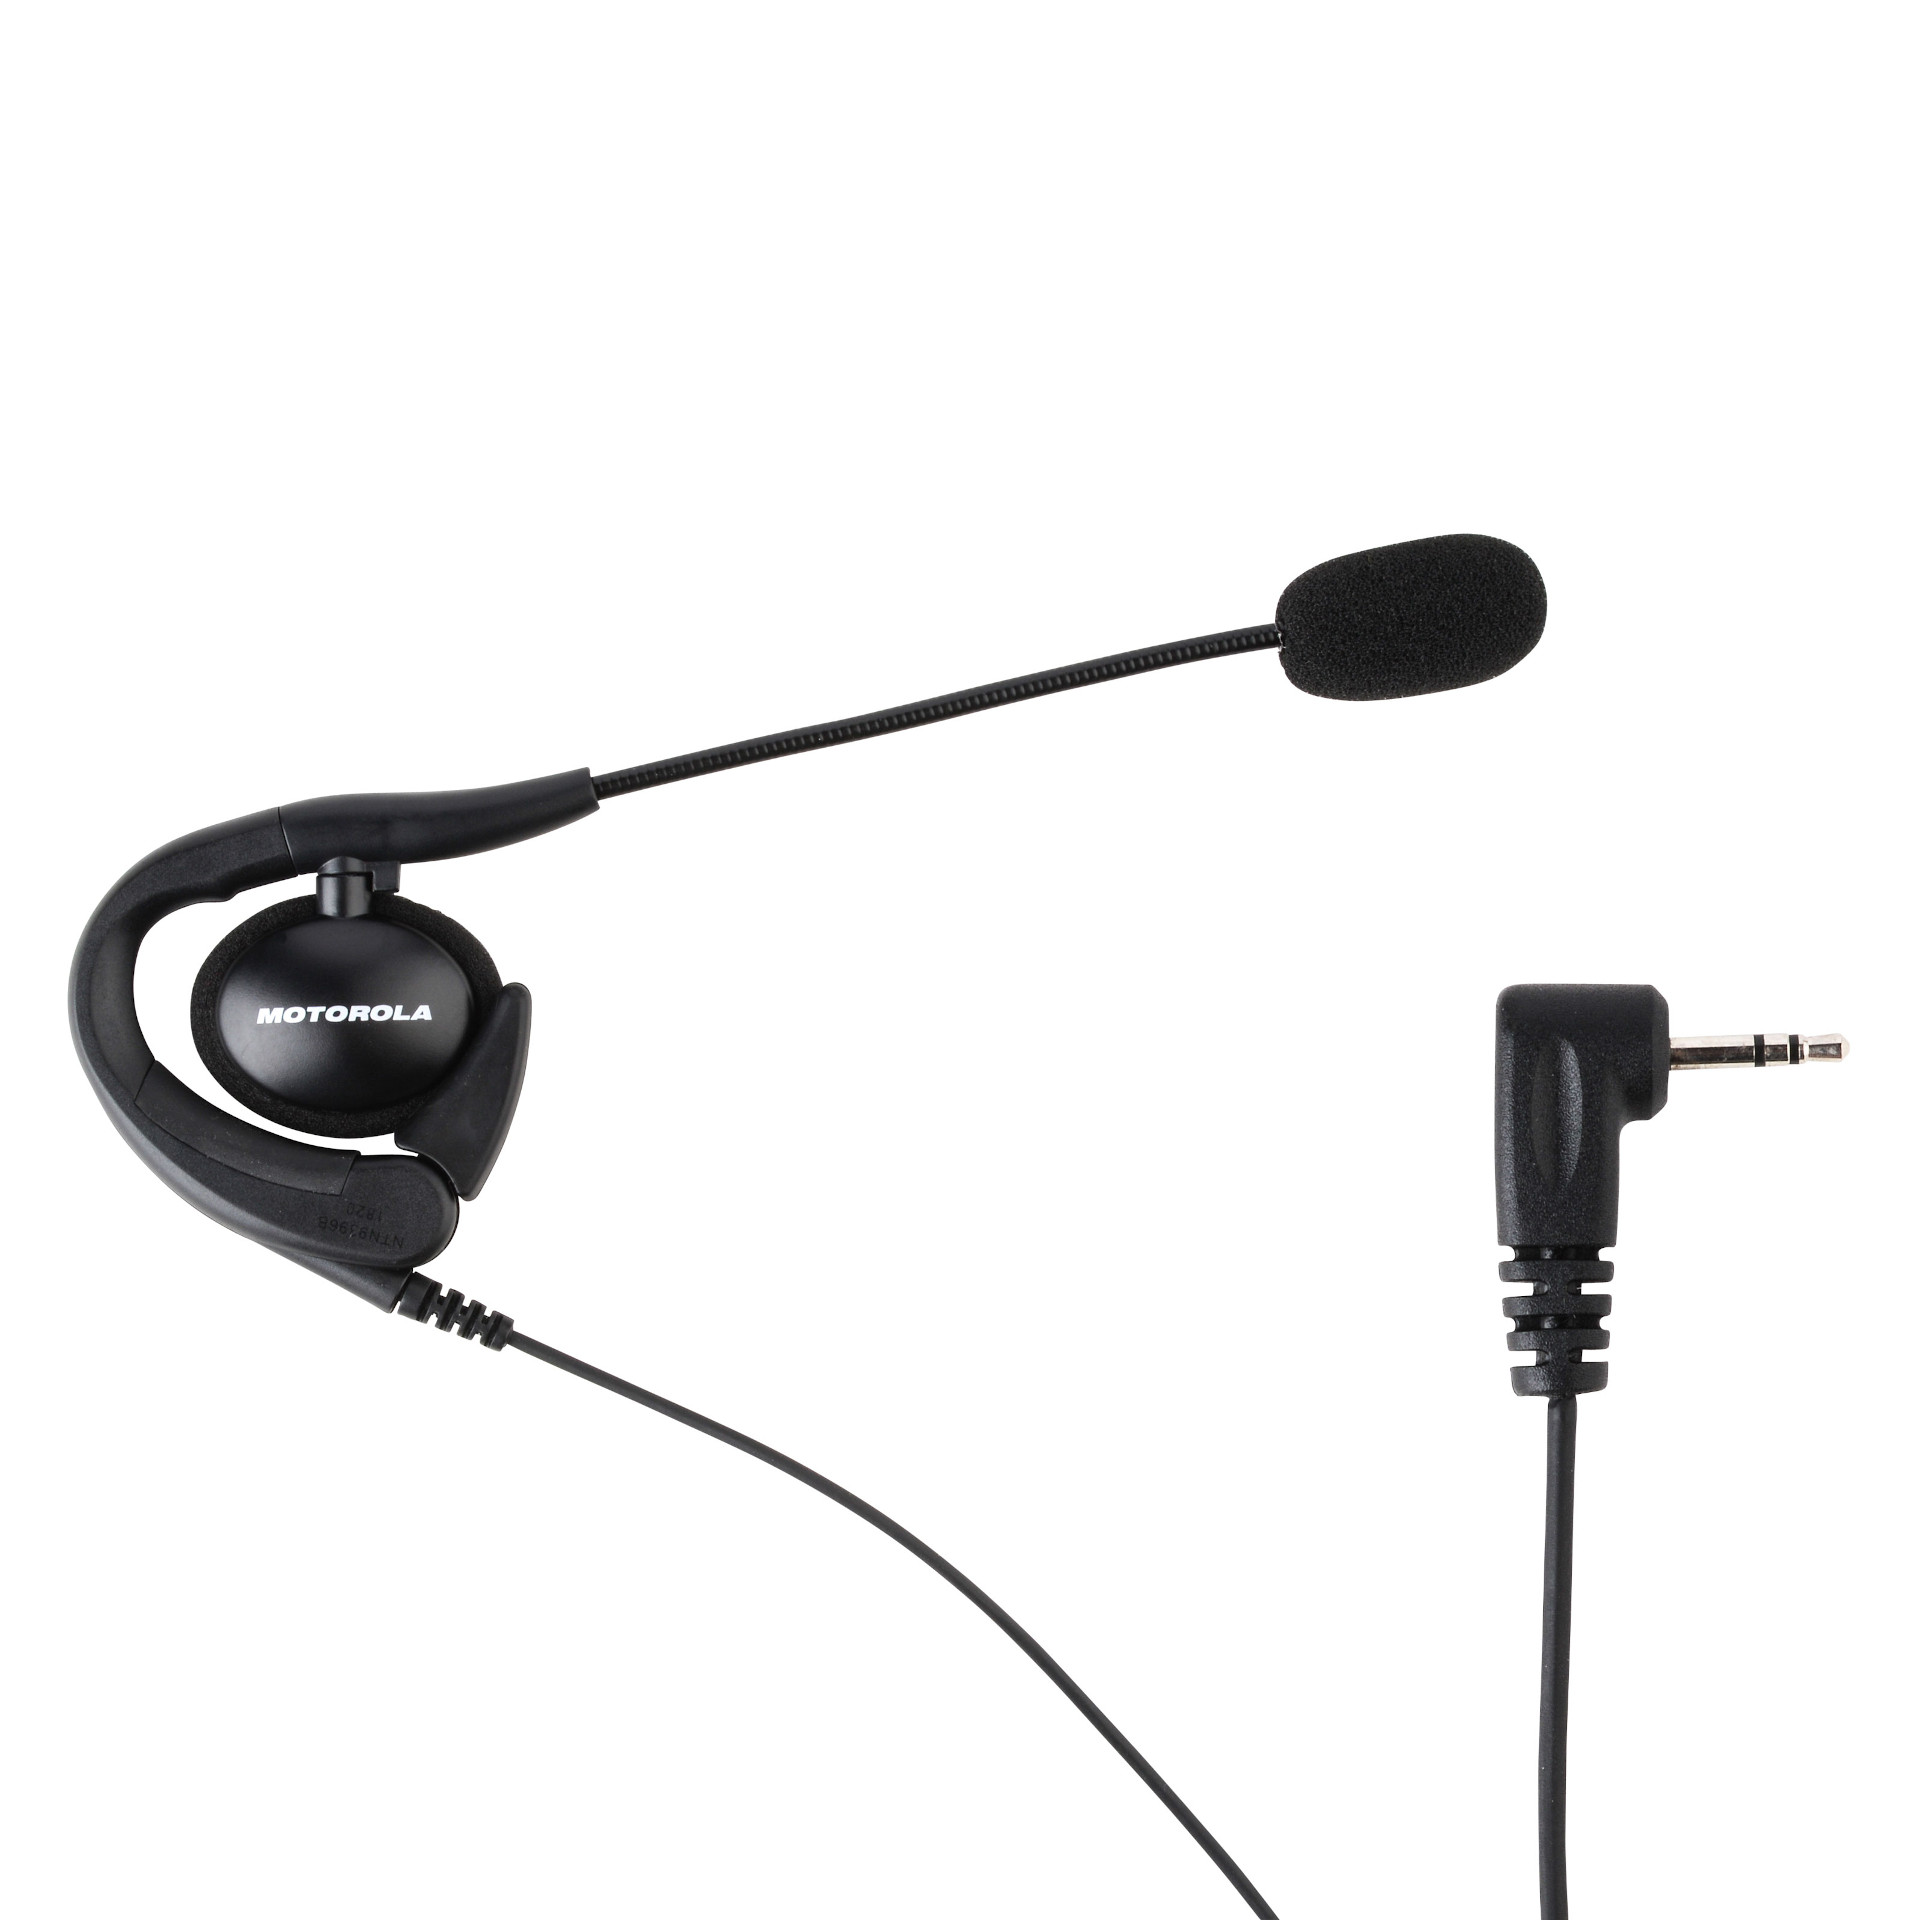 motorola 56320 Earpiece with boom mic